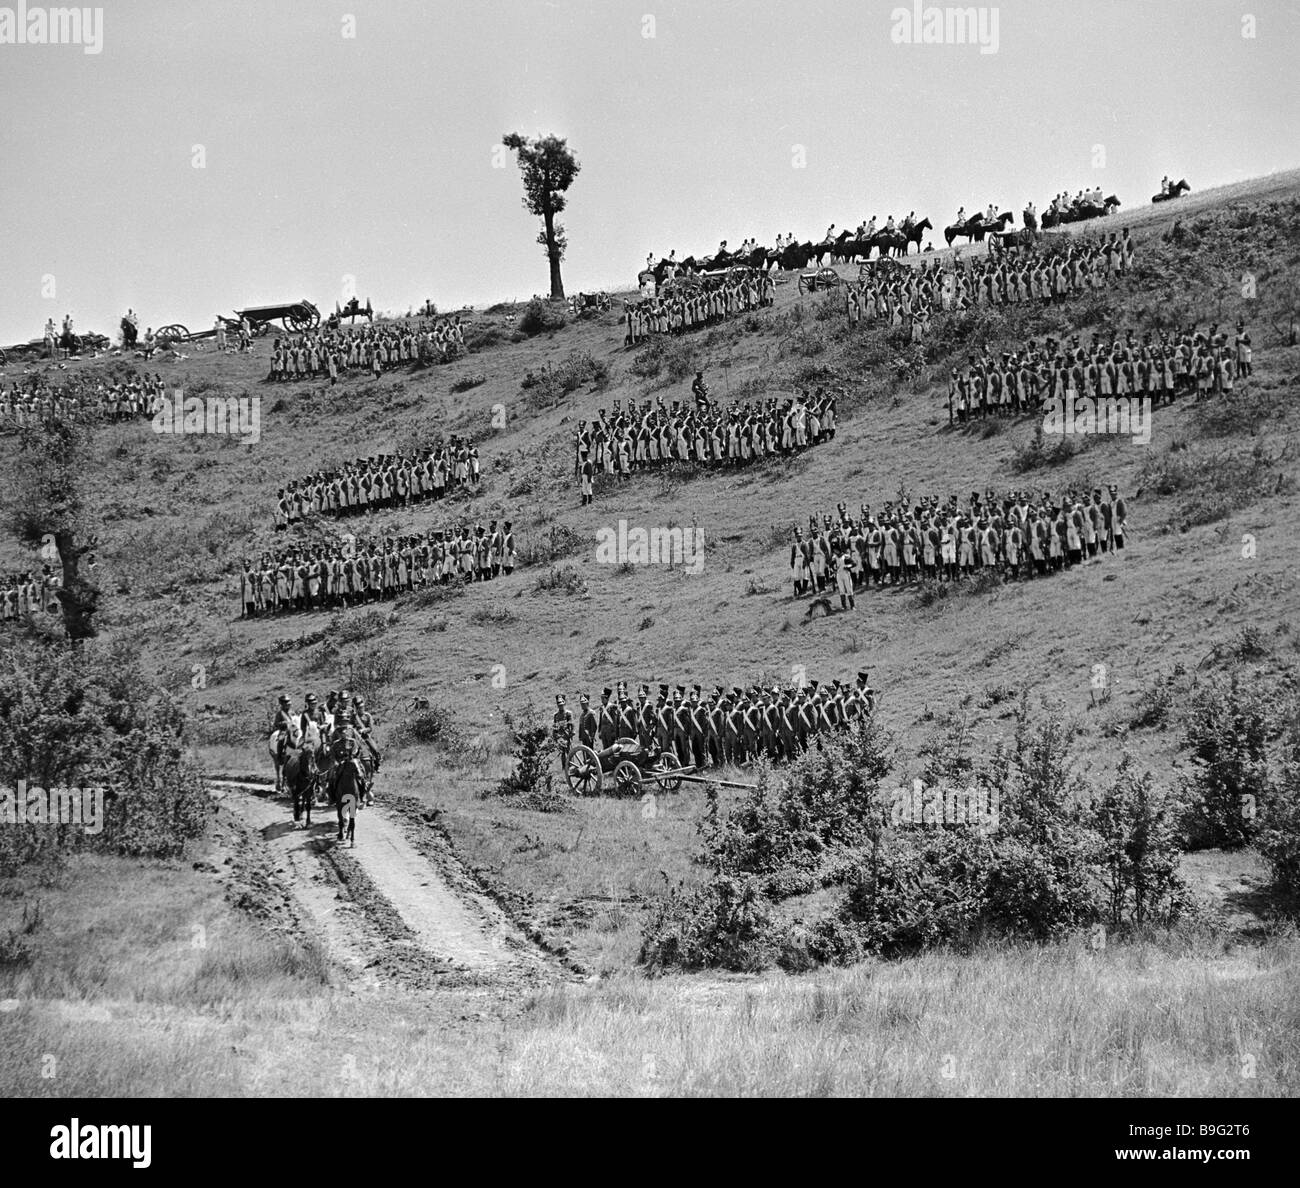 Shooting a battle scene of the feature film Waterloo - Stock Image